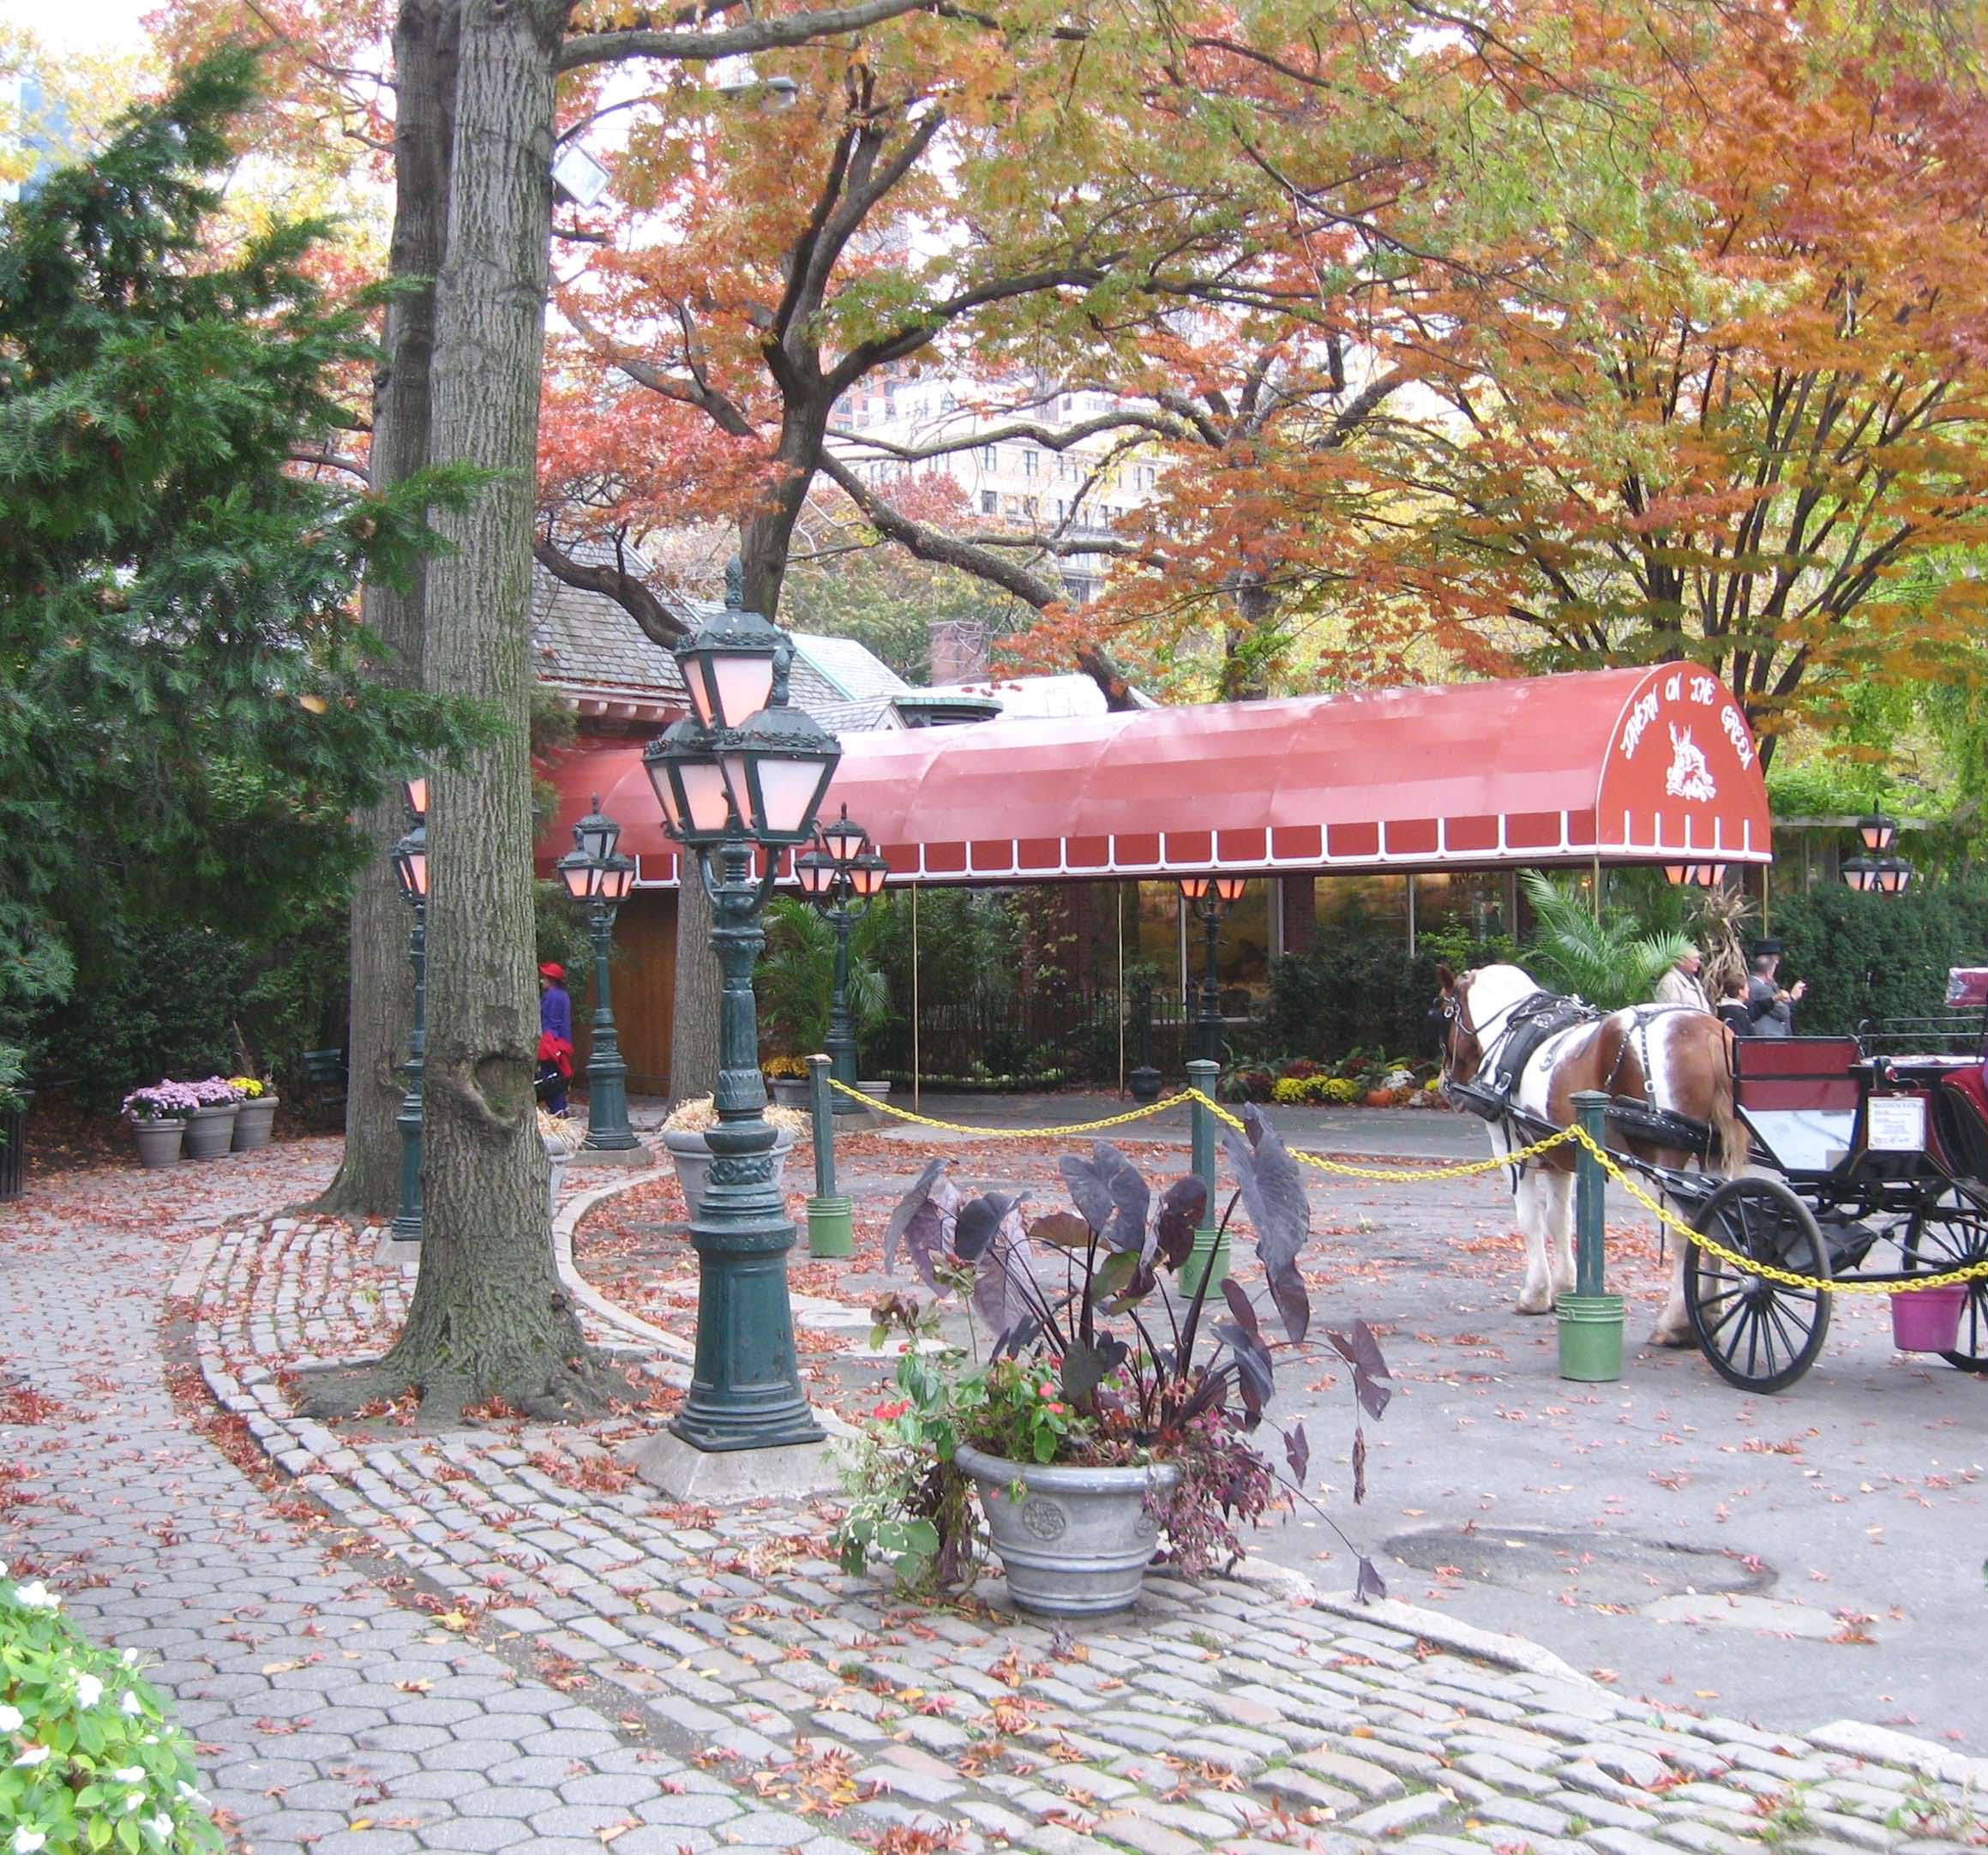 Revamped Tavern on the Green Set to Reopen on the Upper West Side